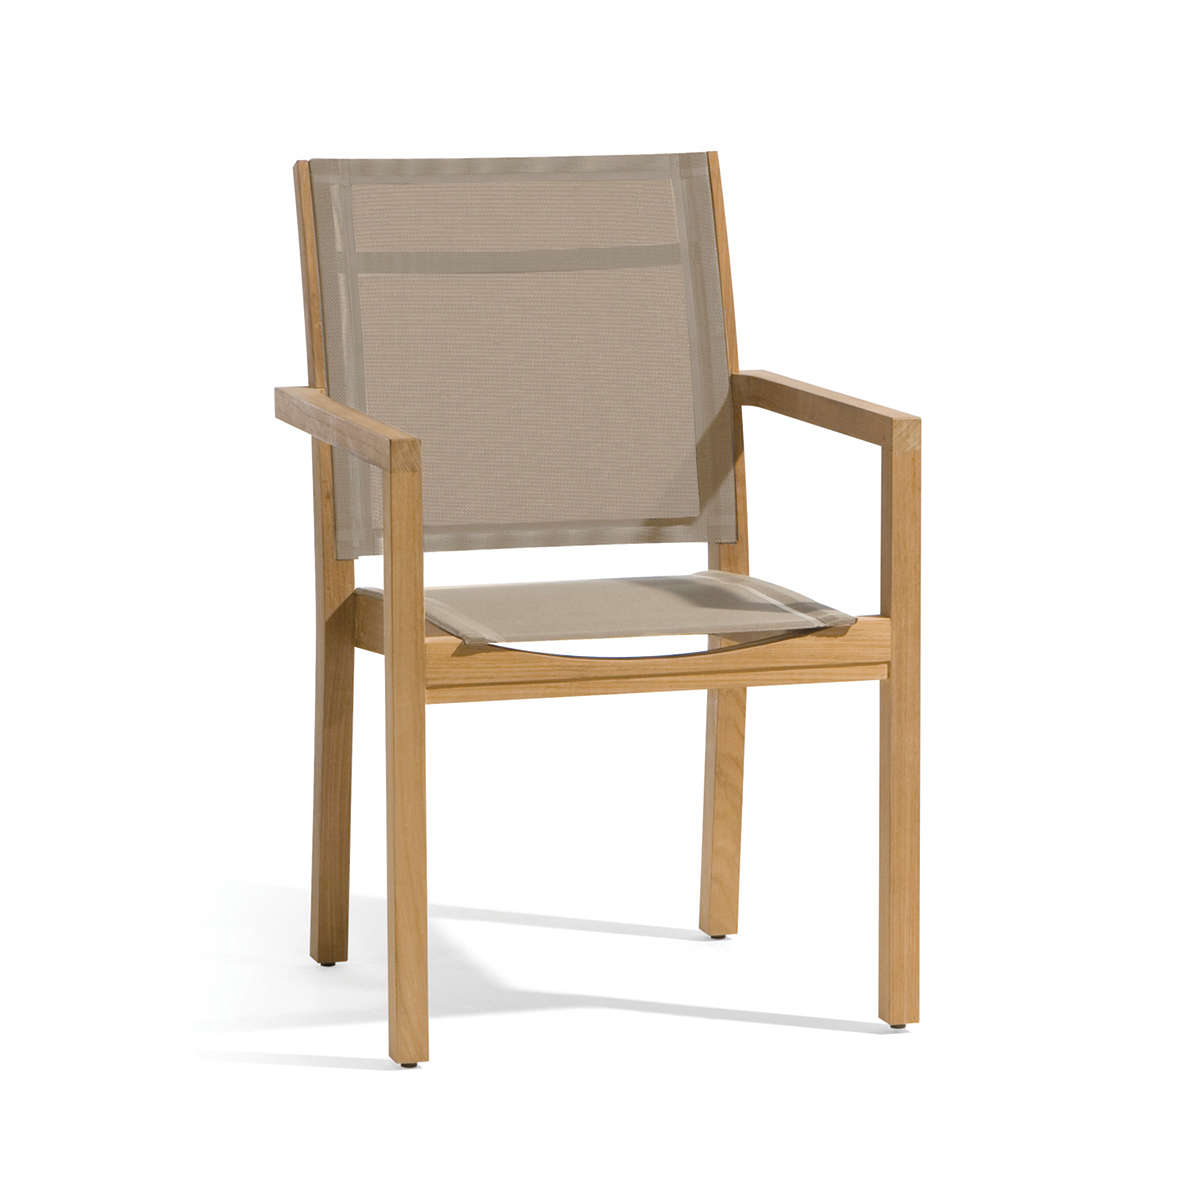 Siena Textiles Teak Dining Chair